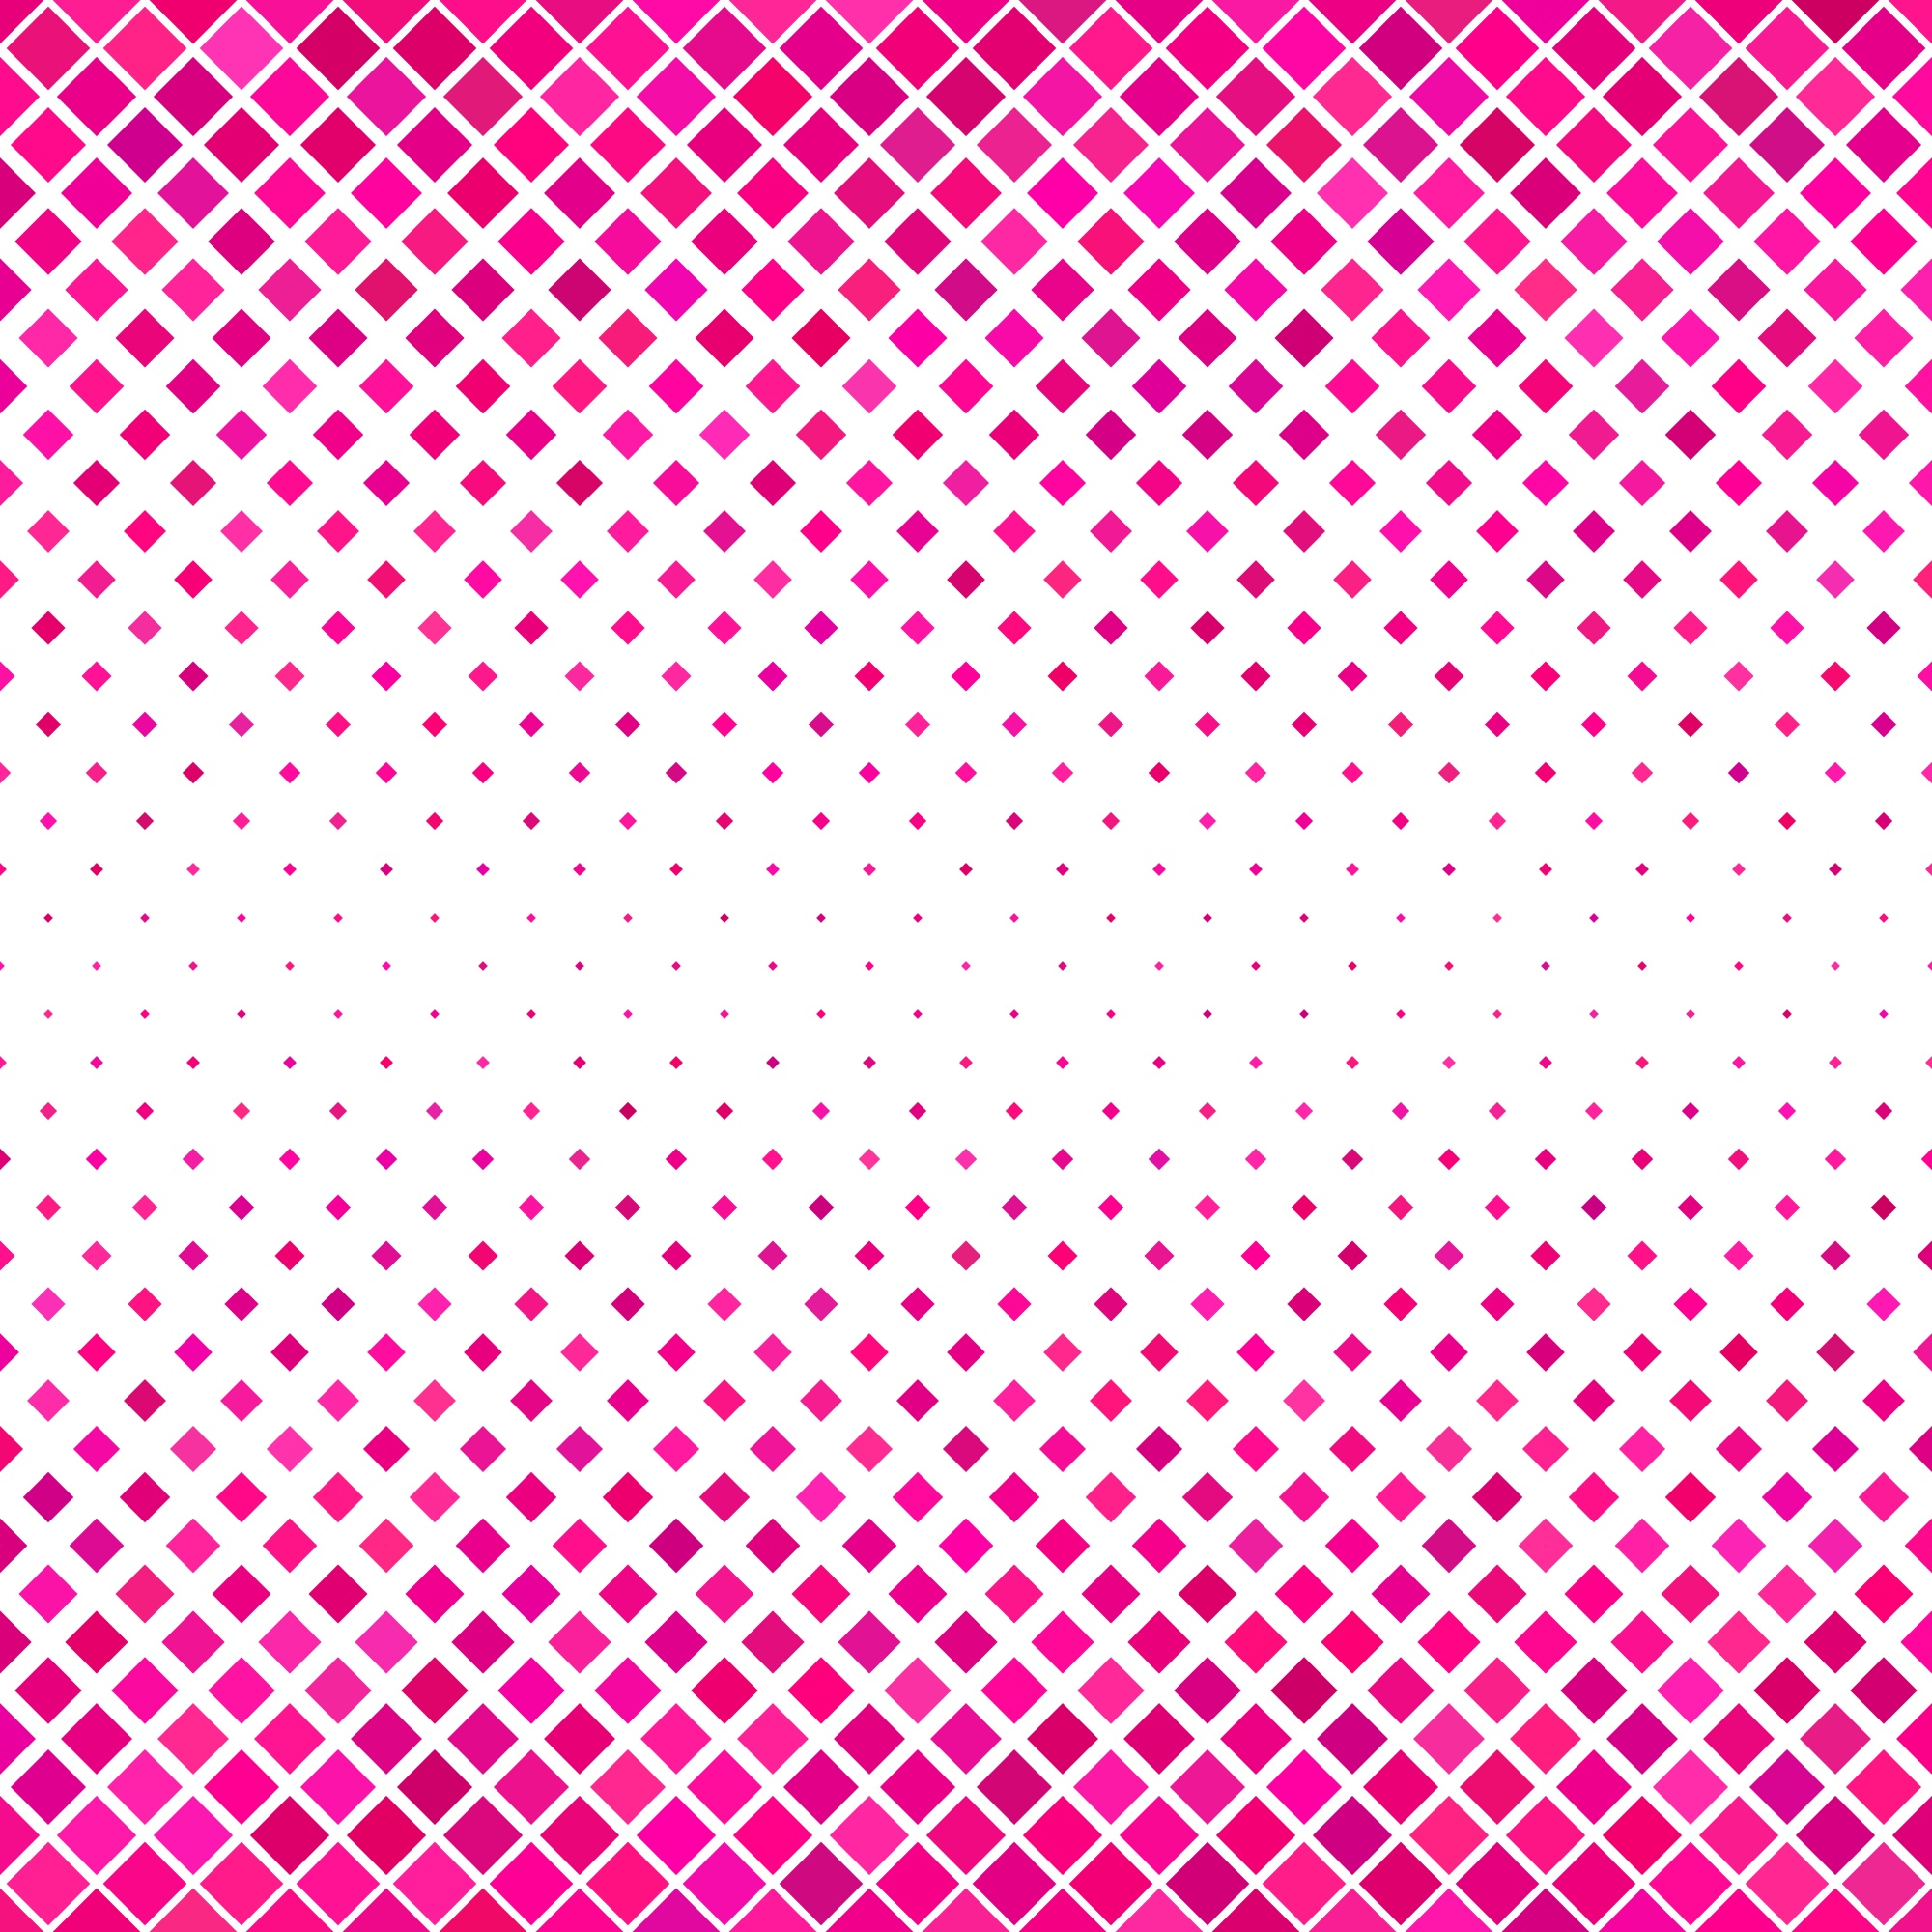 Pink square pattern background - geometrical vector design